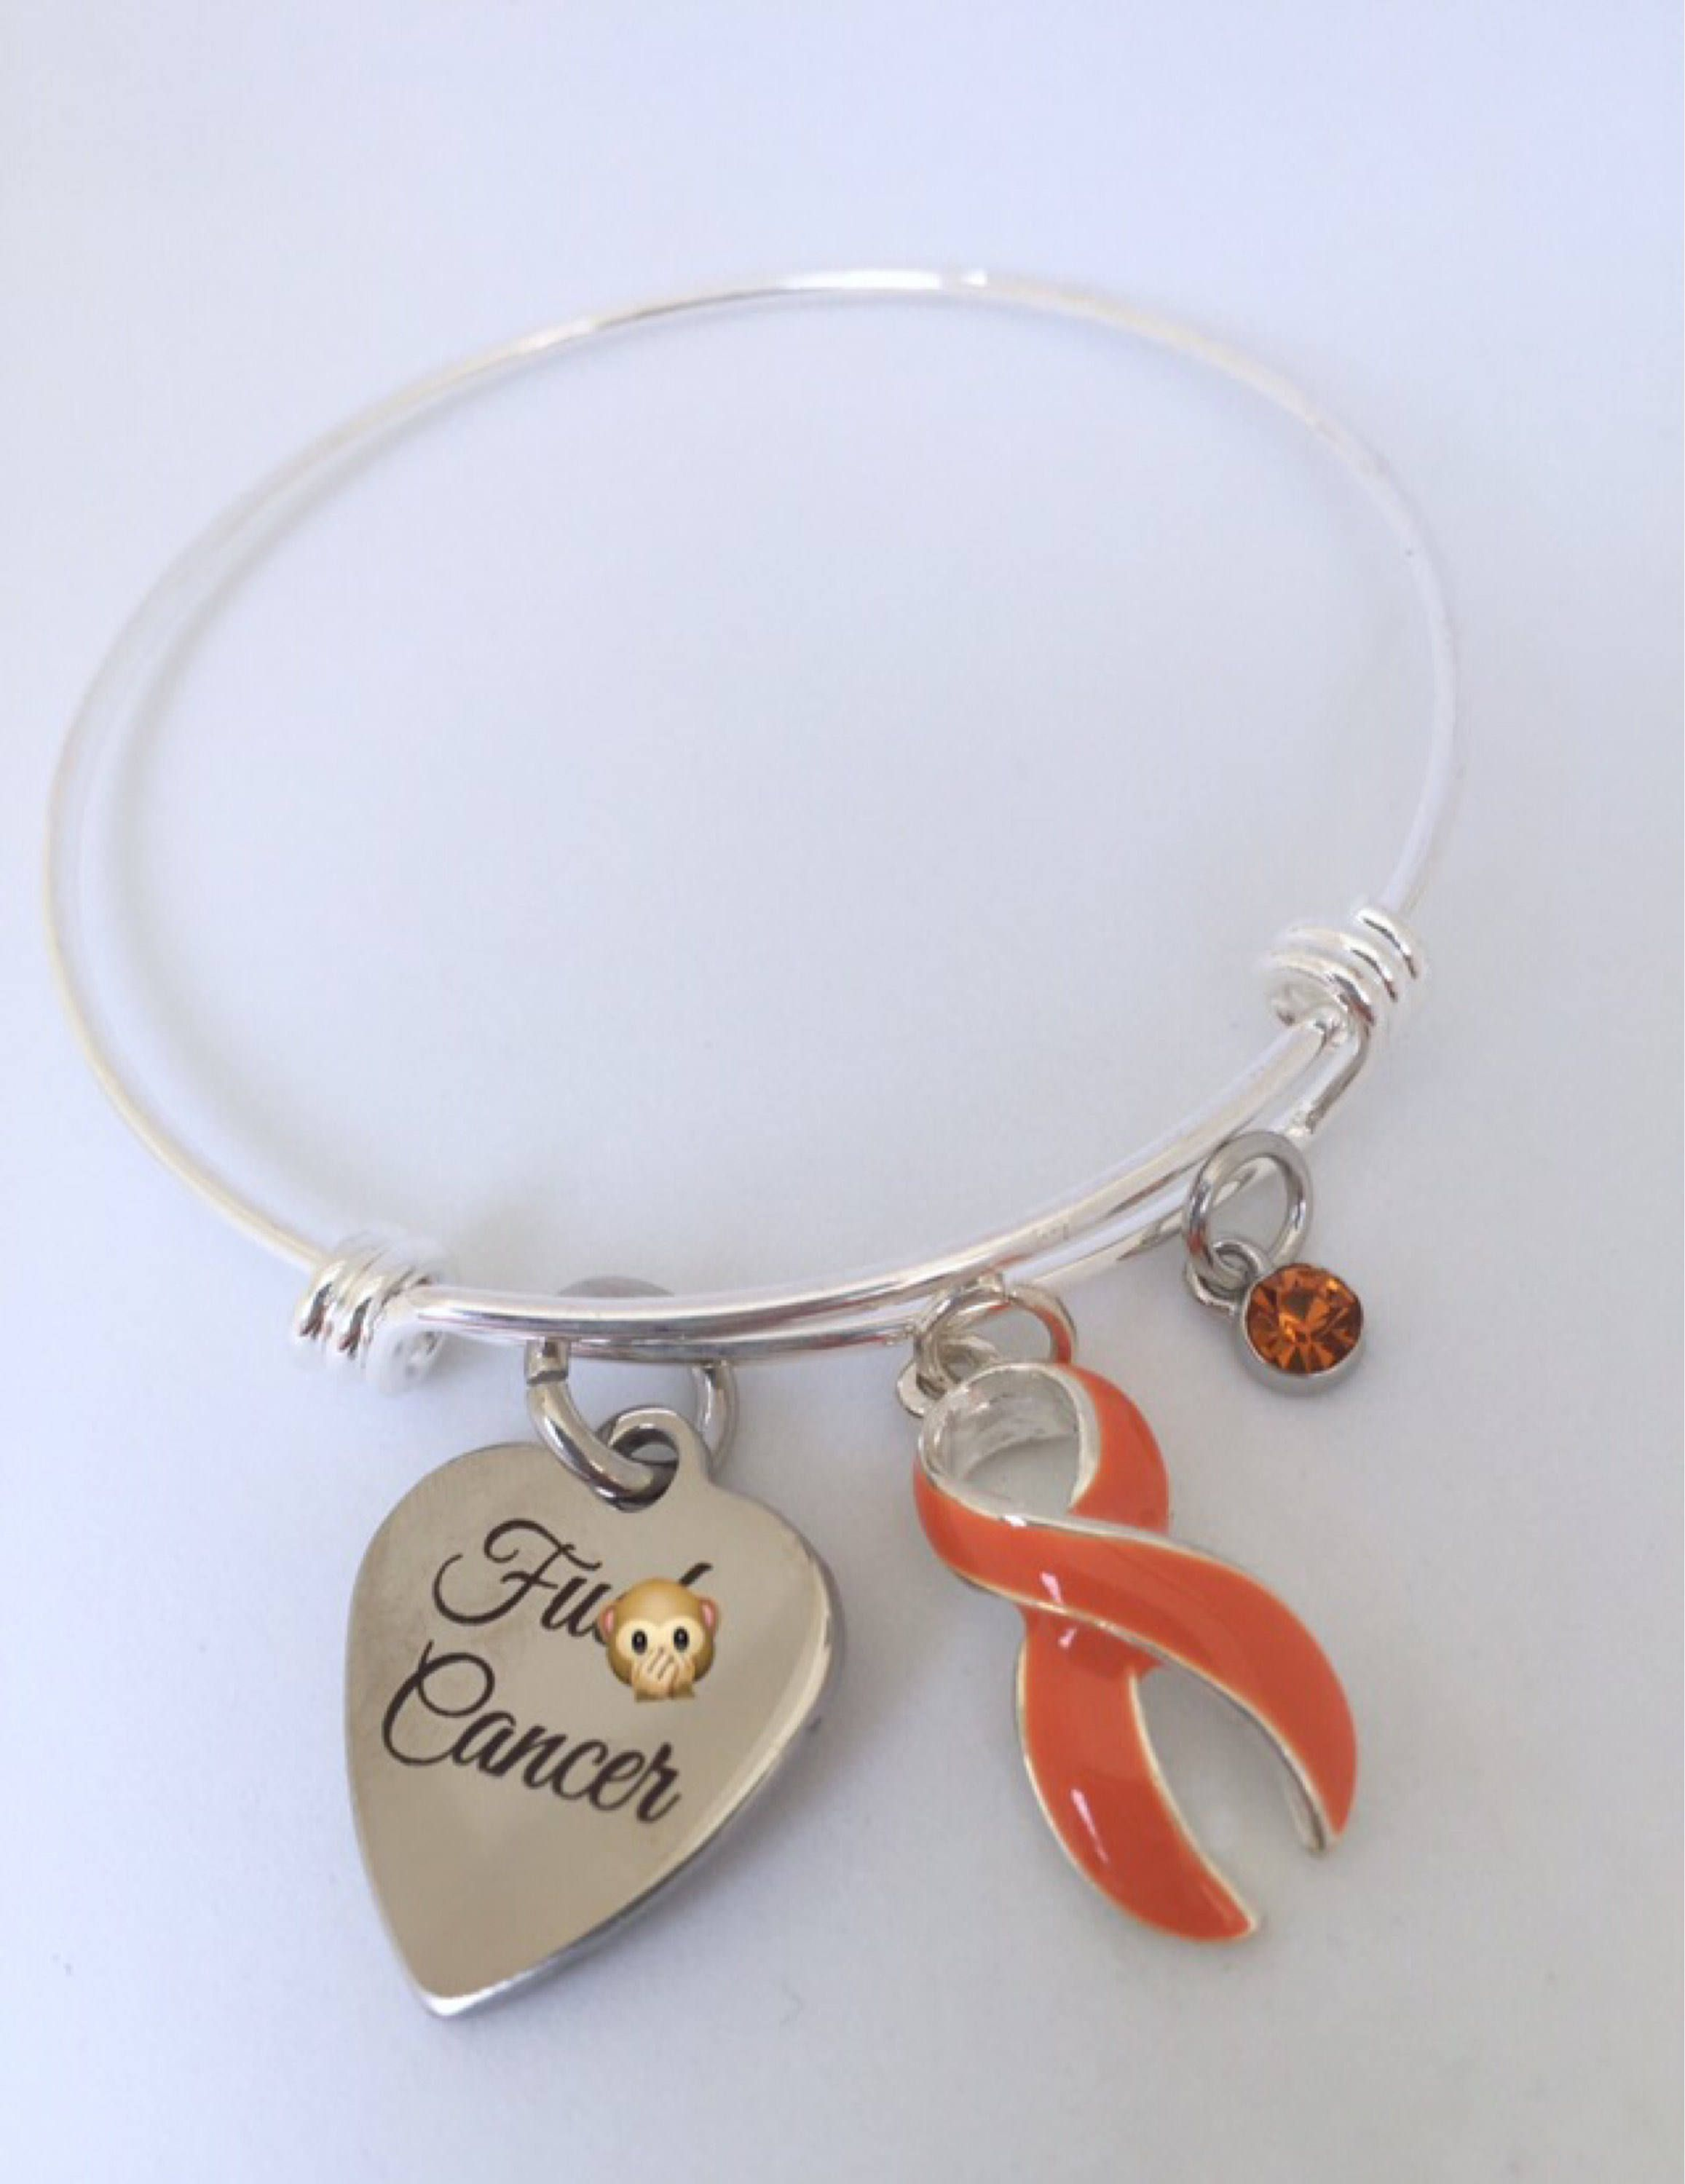 leukemia uk inspiration splendid white beautifully hope bracelet design watchbandit diabetes click cord rubber wristband leather for meaning orange courage one jewelry awareness idea with bracelets ingenious faith hospital